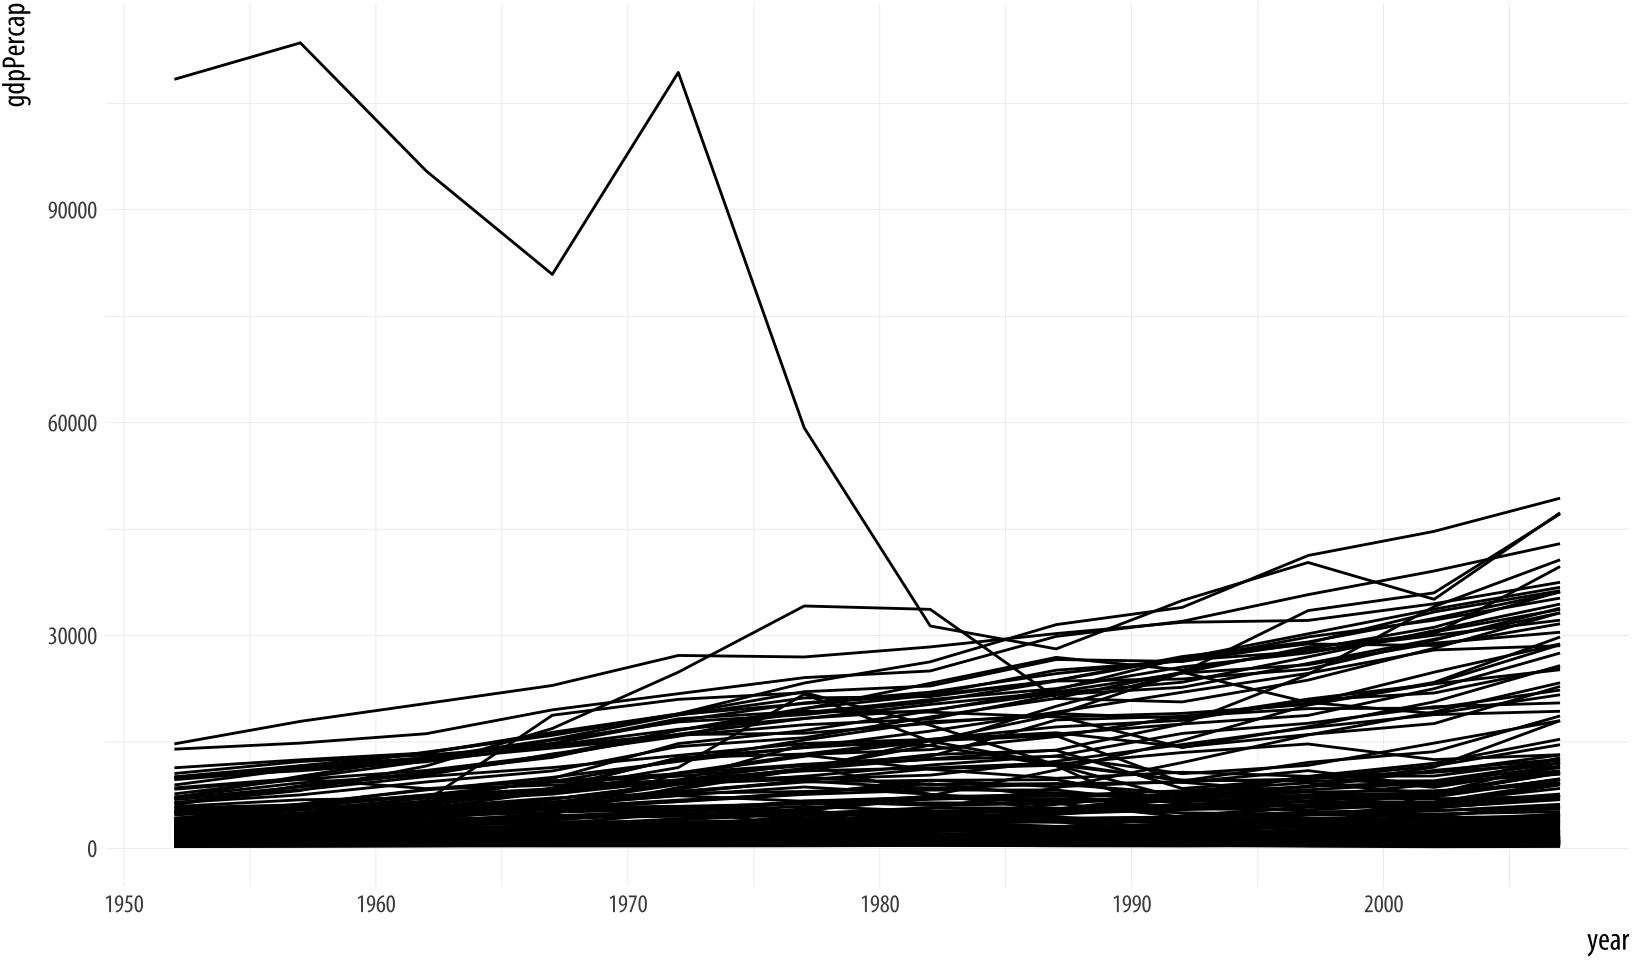 Plotting the data over time by country, again.